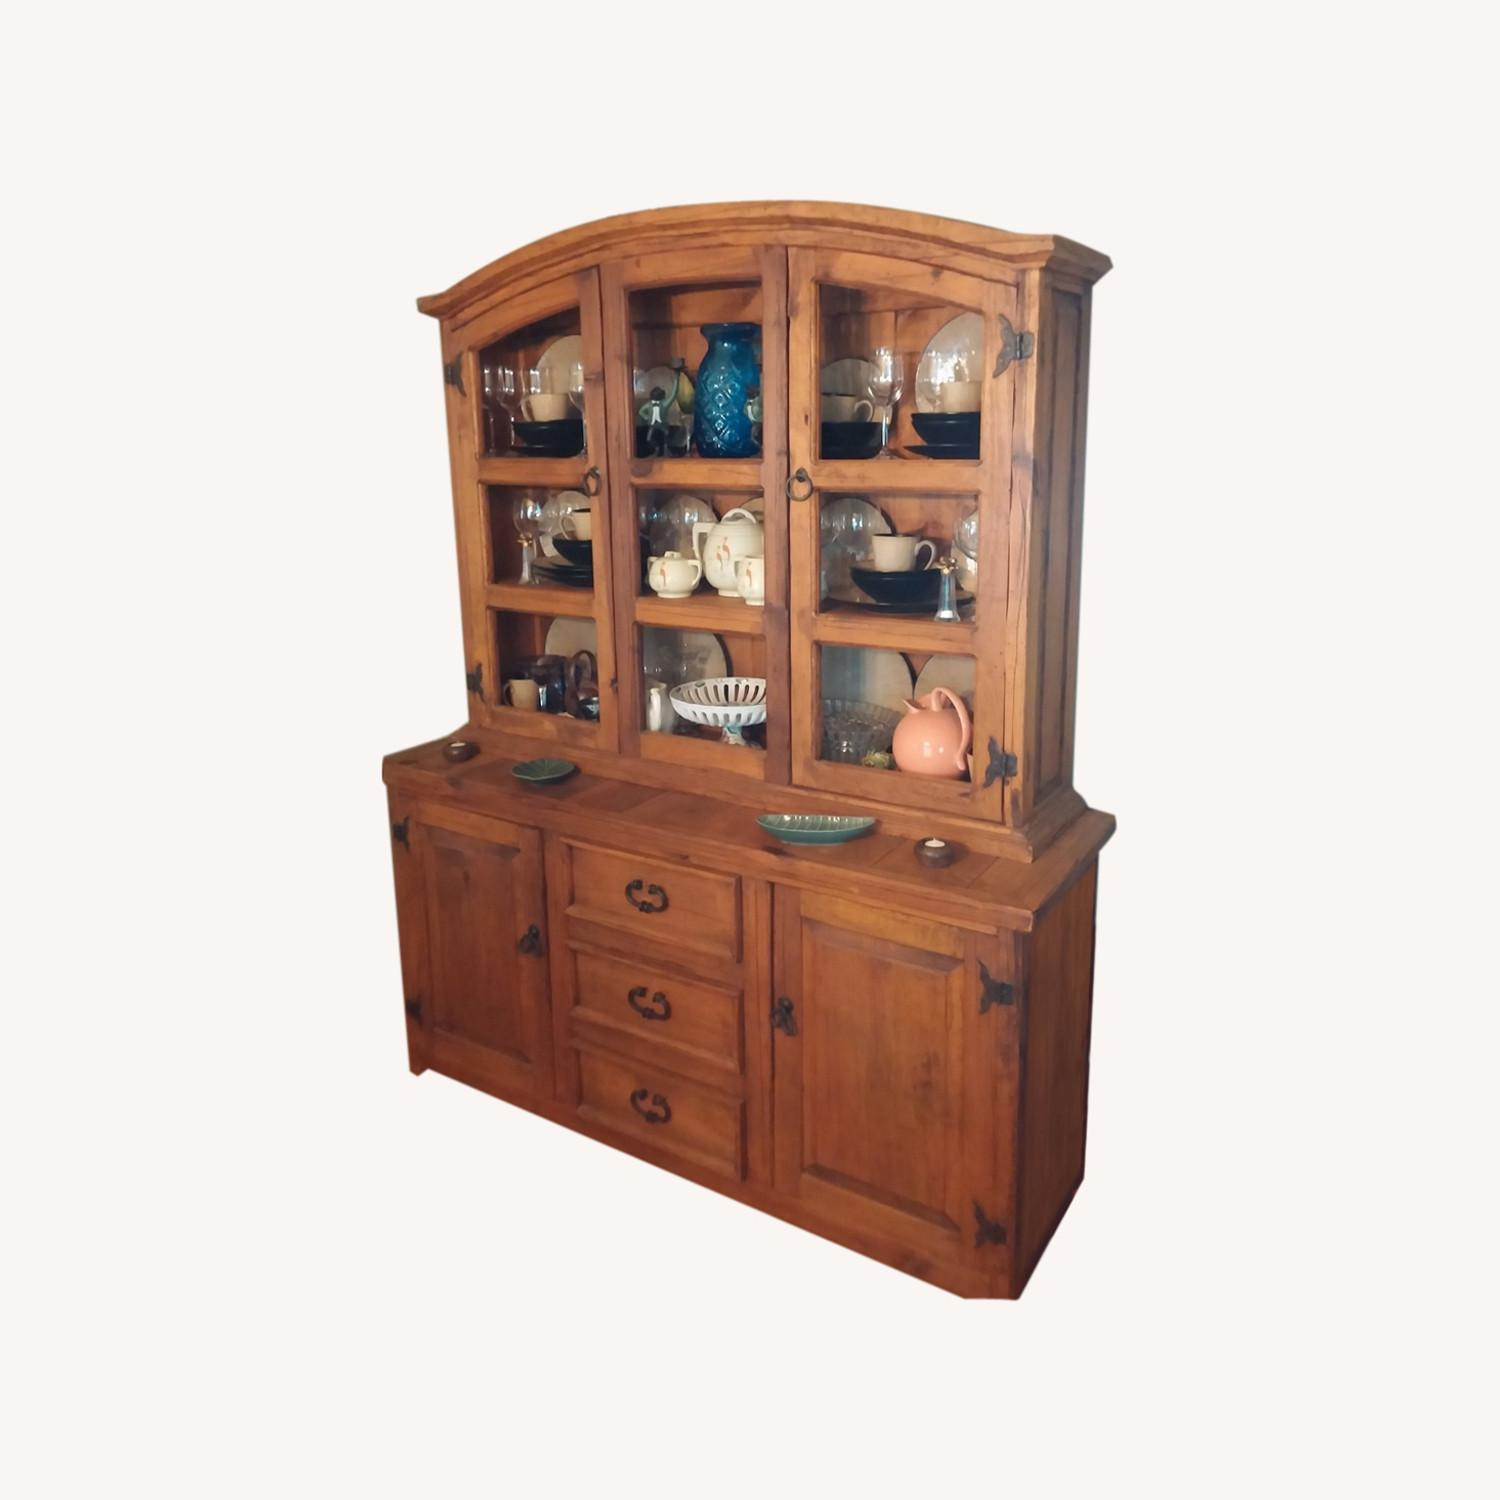 Castillion Style Breakfront with Hutch - image-0